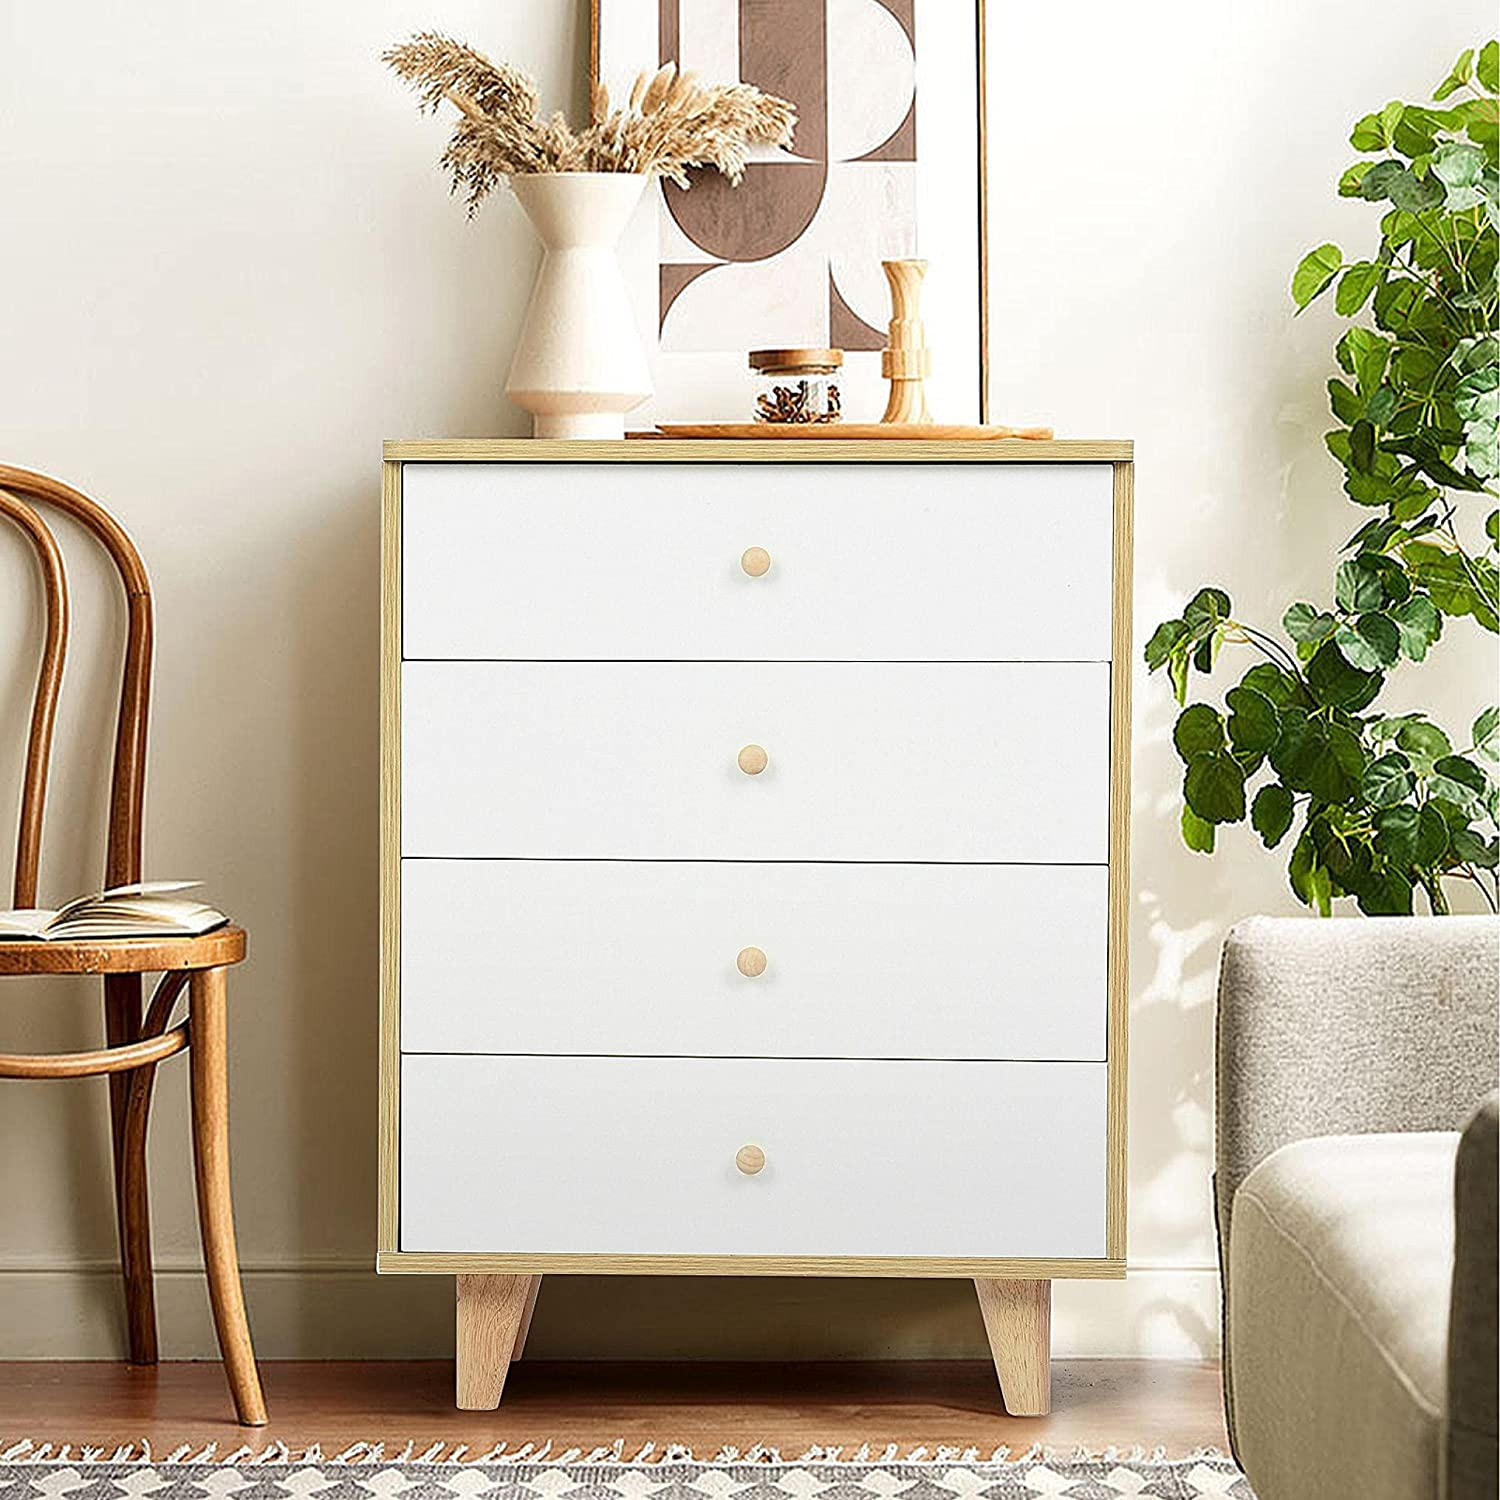 Nightstand End Table Brand Cheap Tulsa Mall Sale Venue Side with 4 Drawers Storage Solid